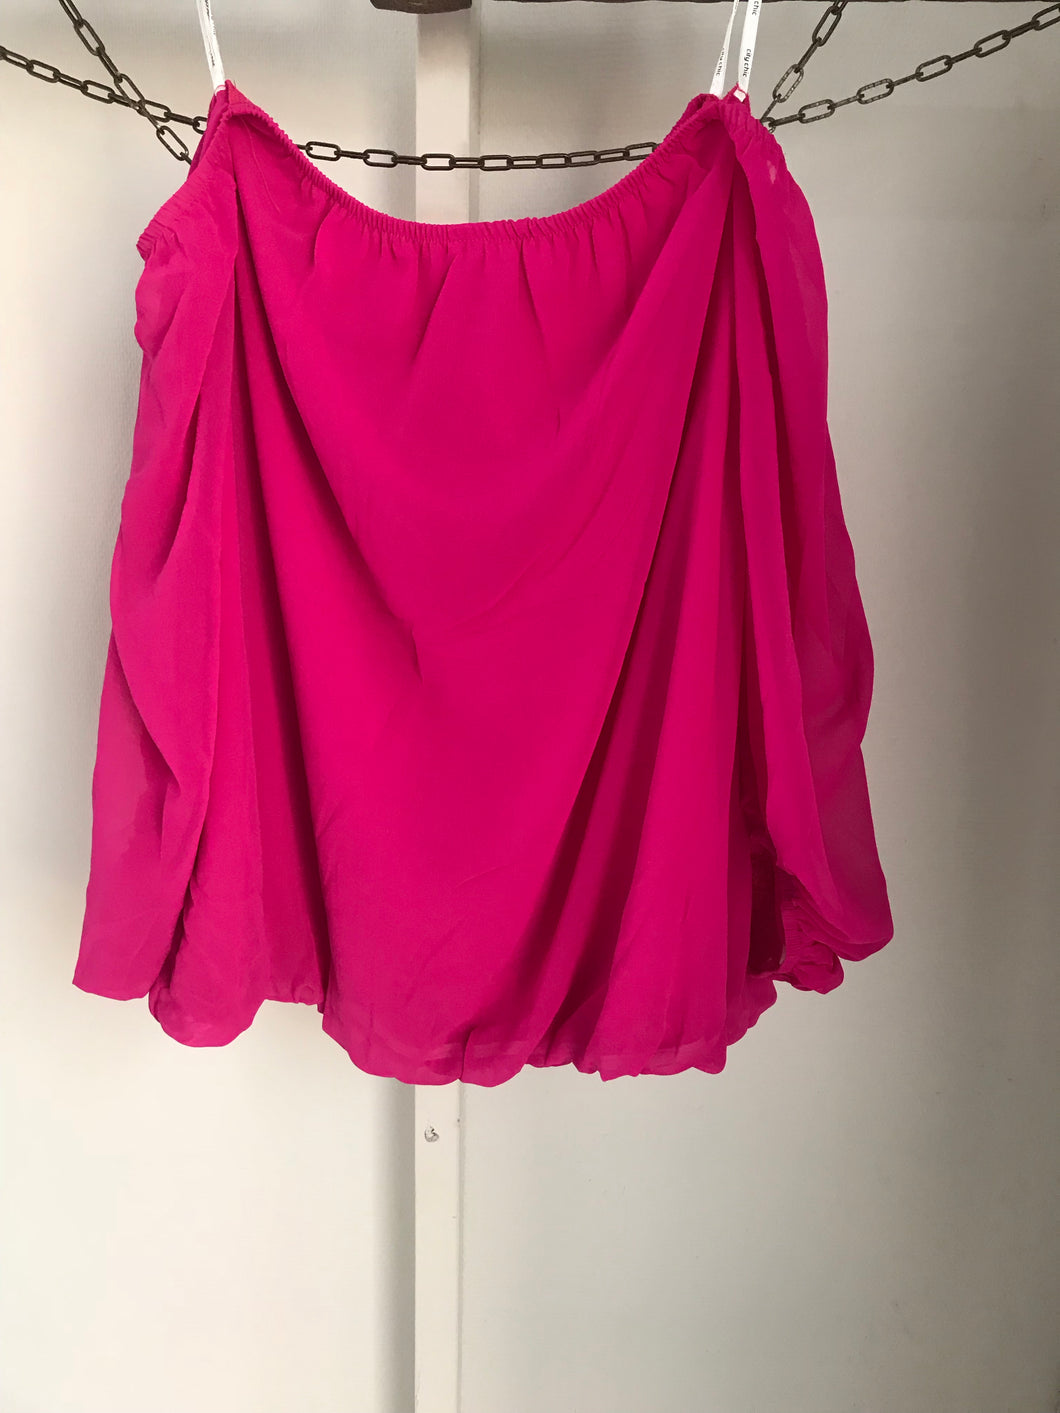 City Chic hot pink off the shoulder top Size S ( estimated size 16) NWT